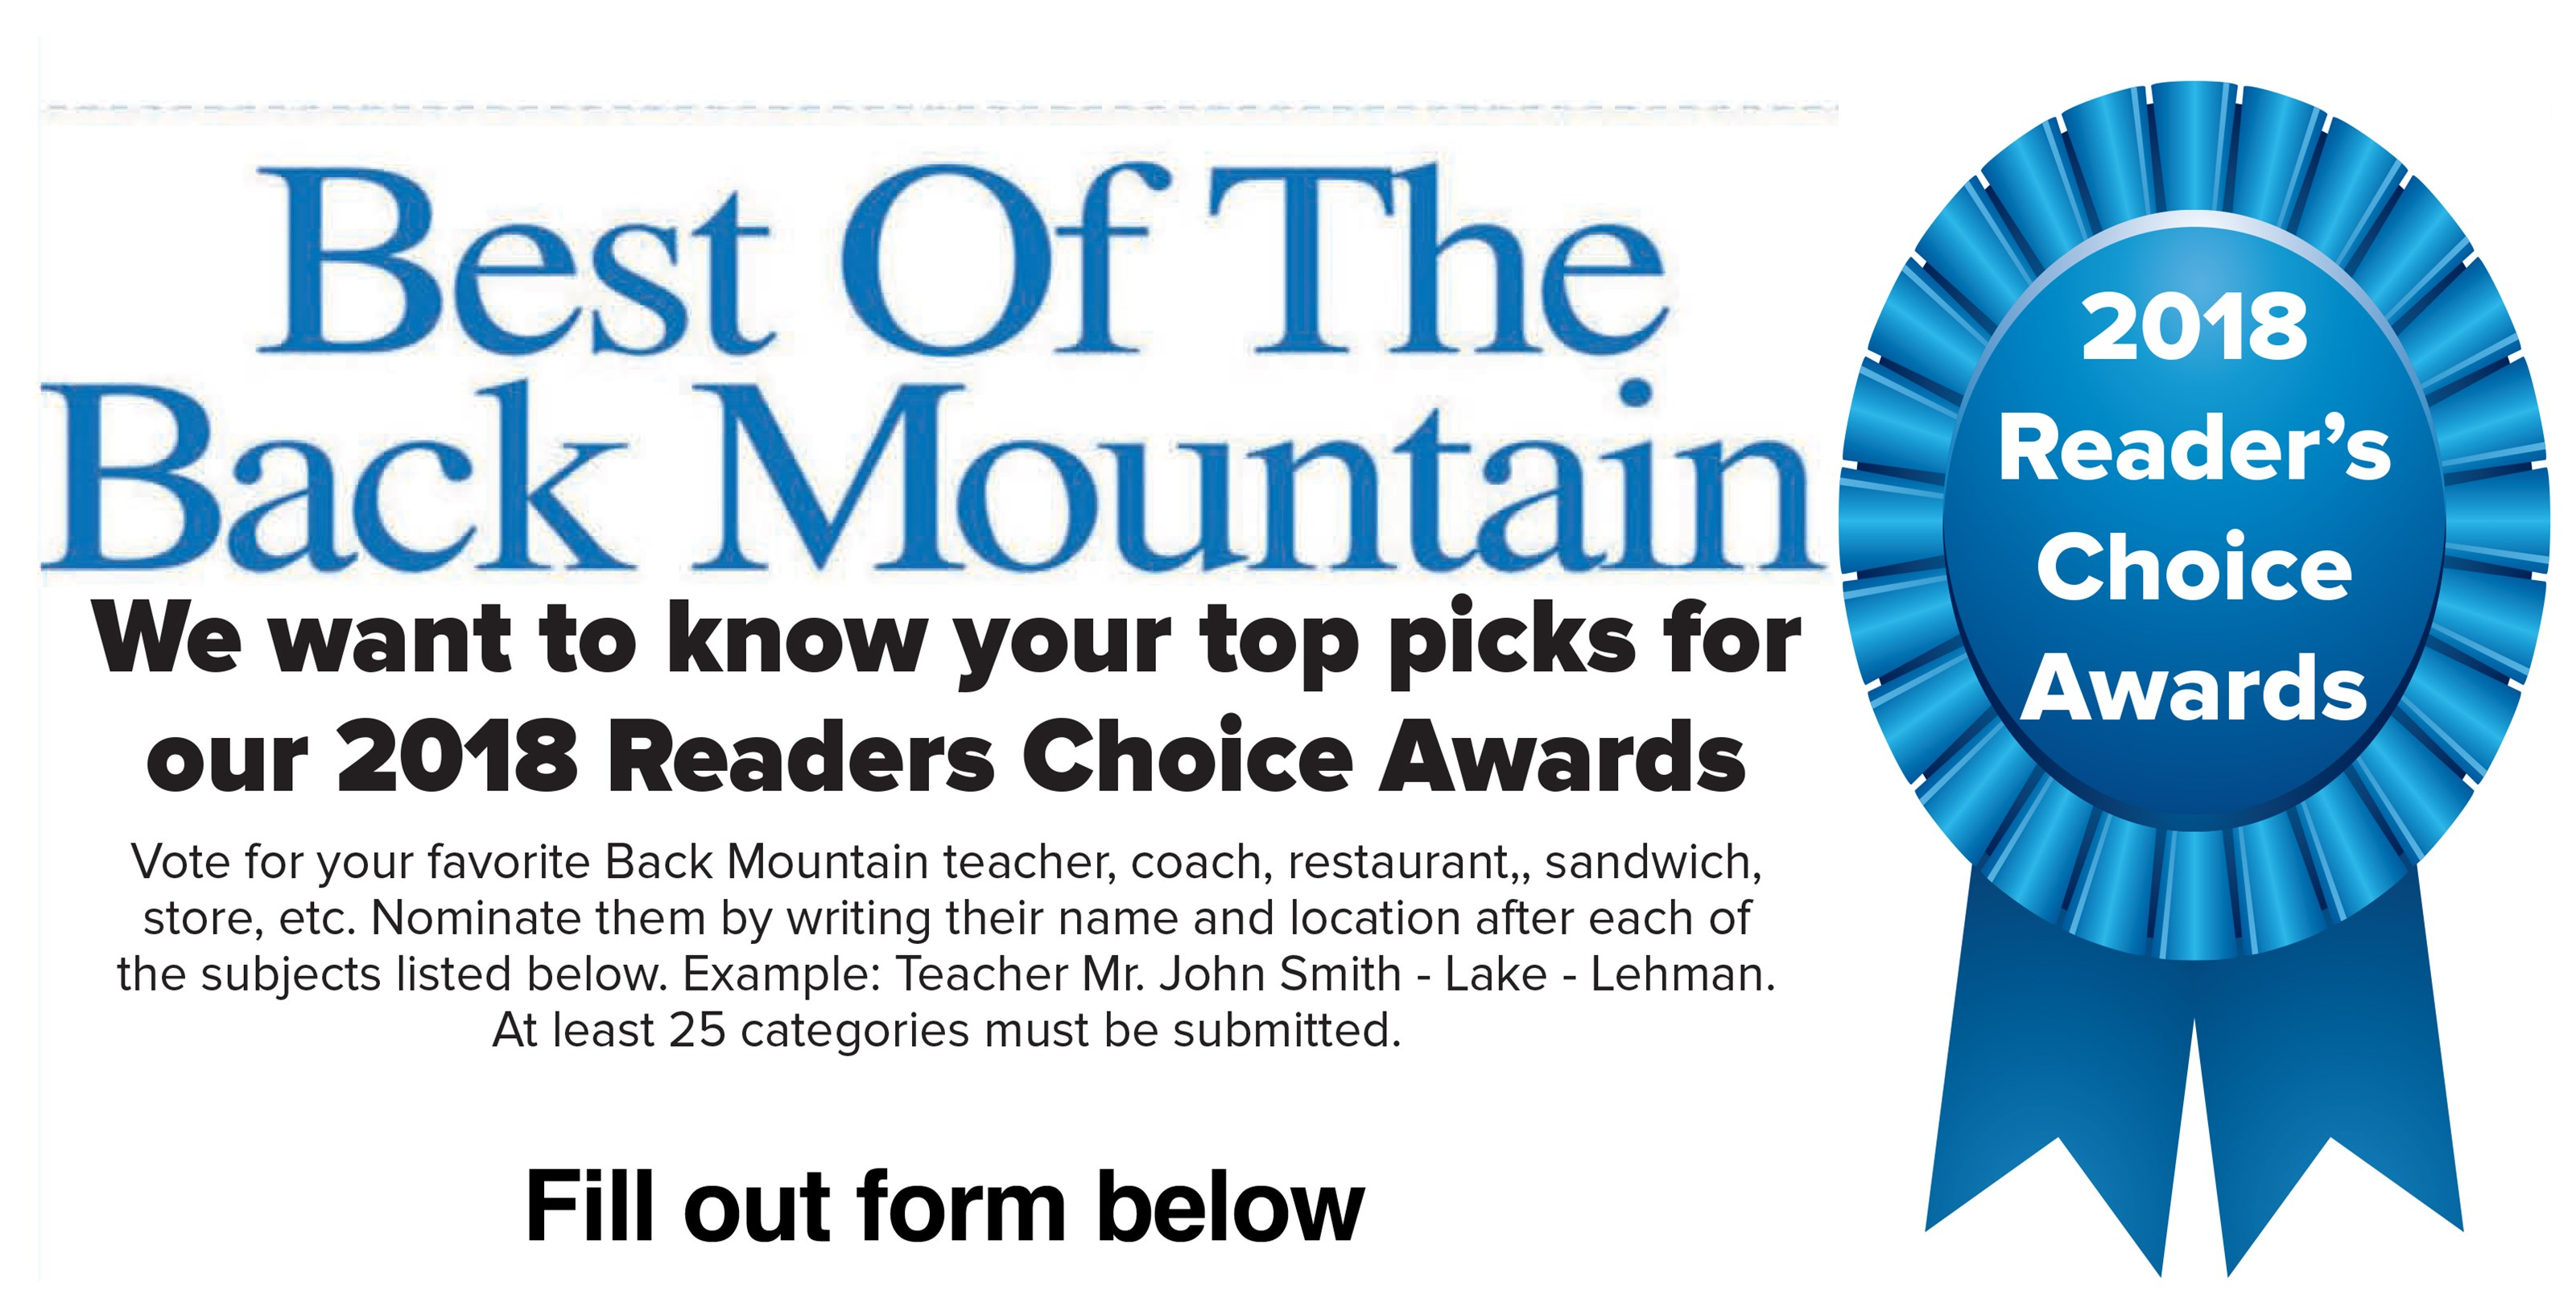 Accessory Shop | Best of the Back Mountain 2018 | Dallas Post